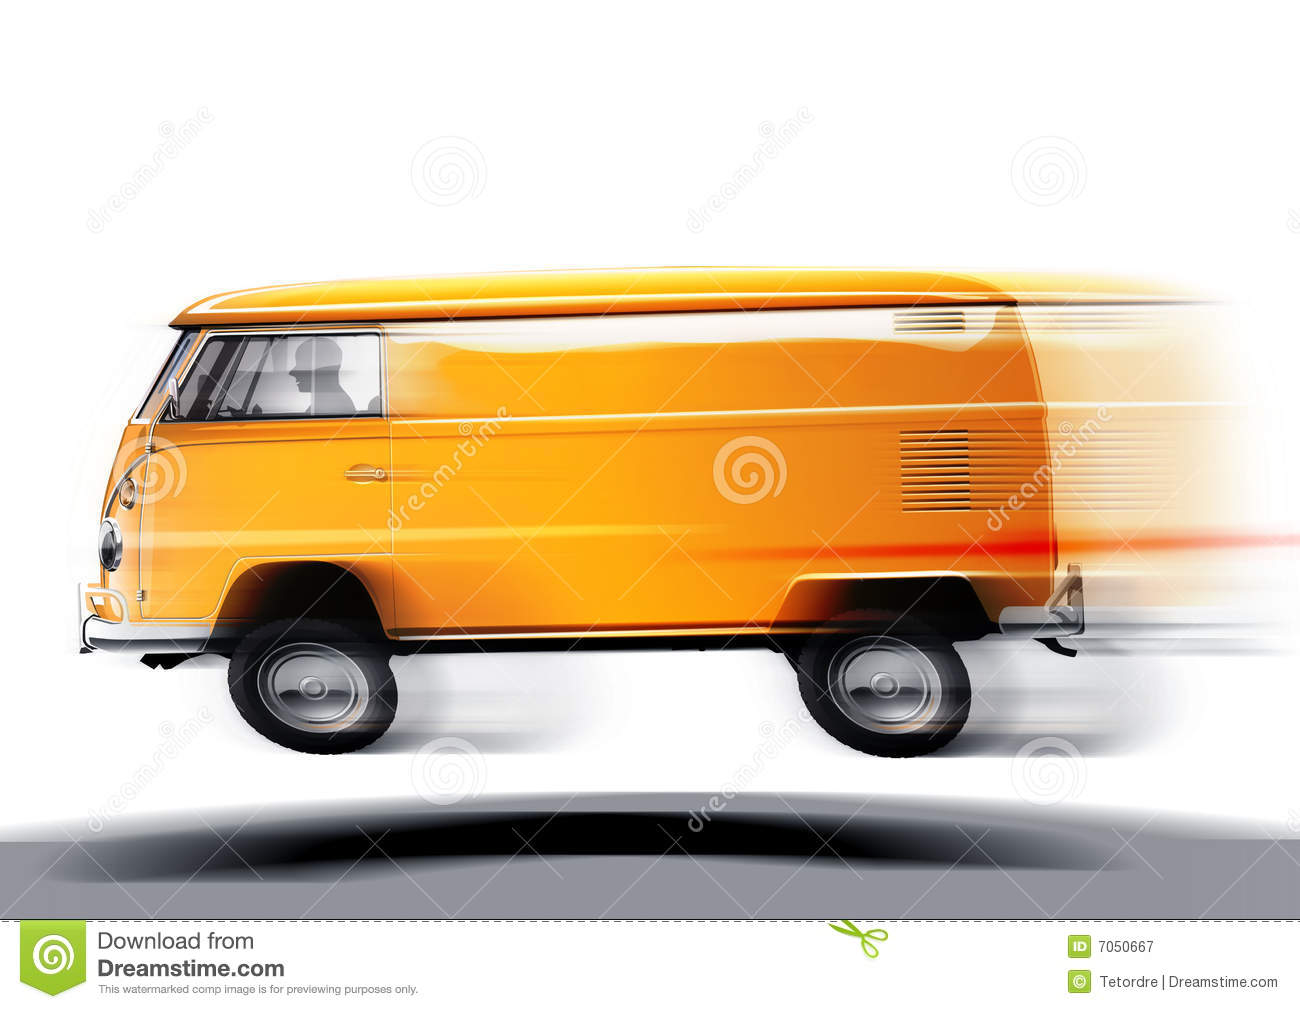 Fast Volkswagen Transporter Royalty Free Stock Photography